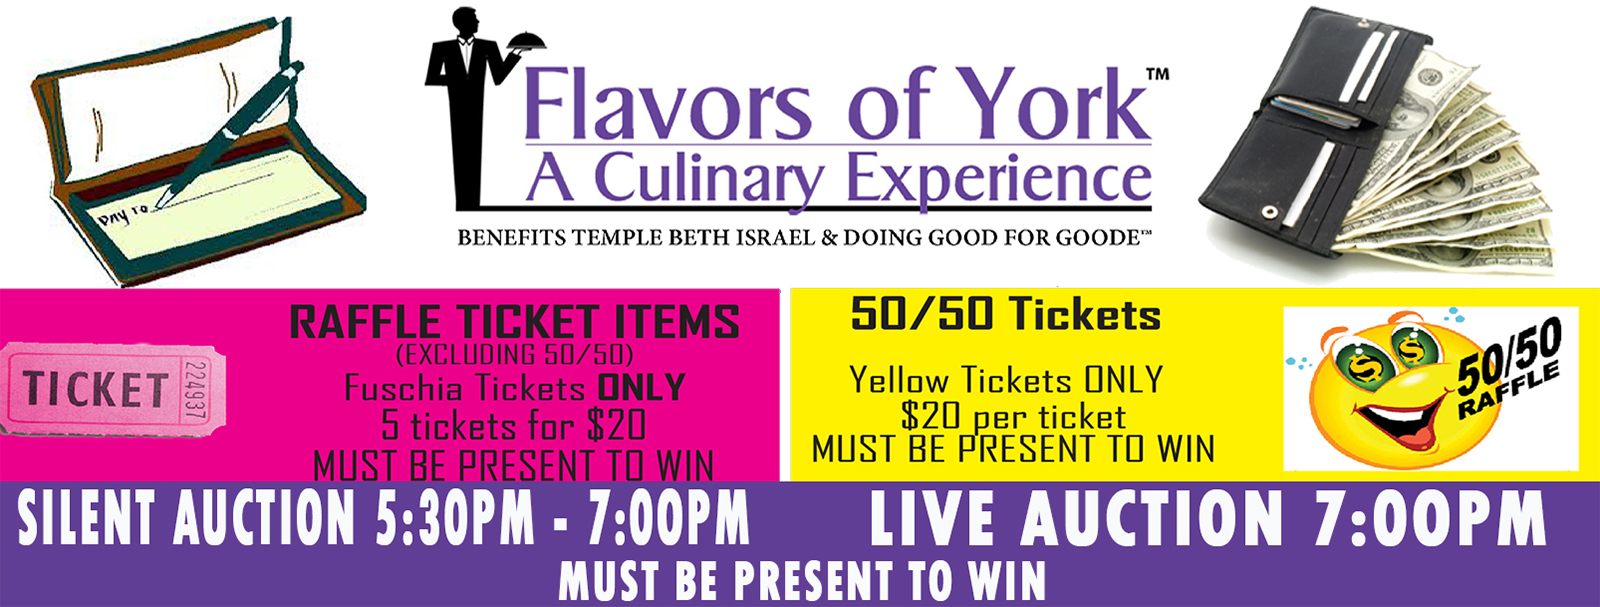 Flavors of York Auction